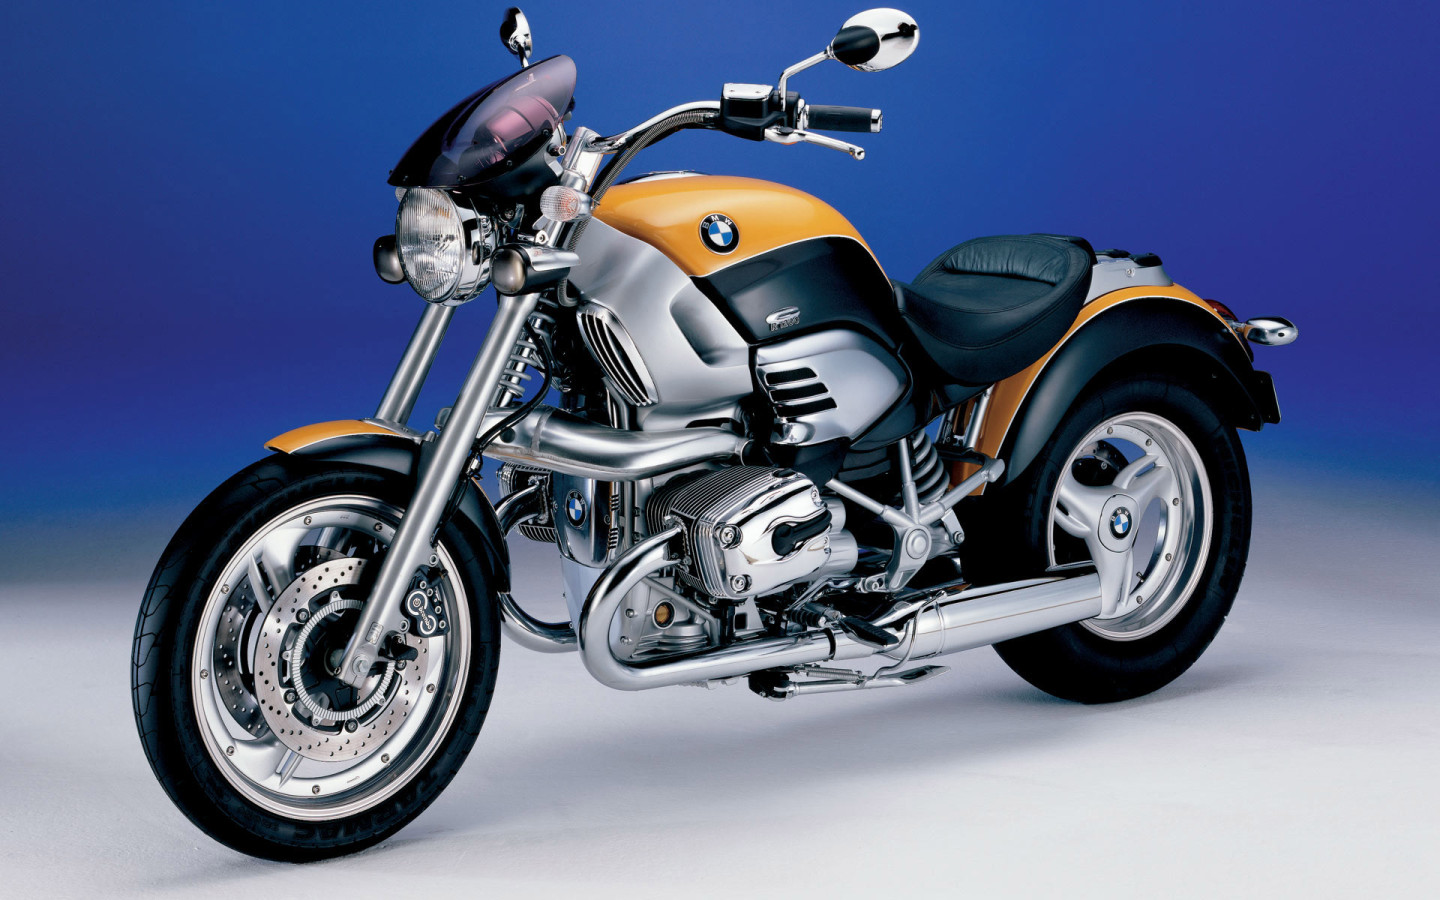 hot moto speed bmw motorcycles latest images view. Black Bedroom Furniture Sets. Home Design Ideas